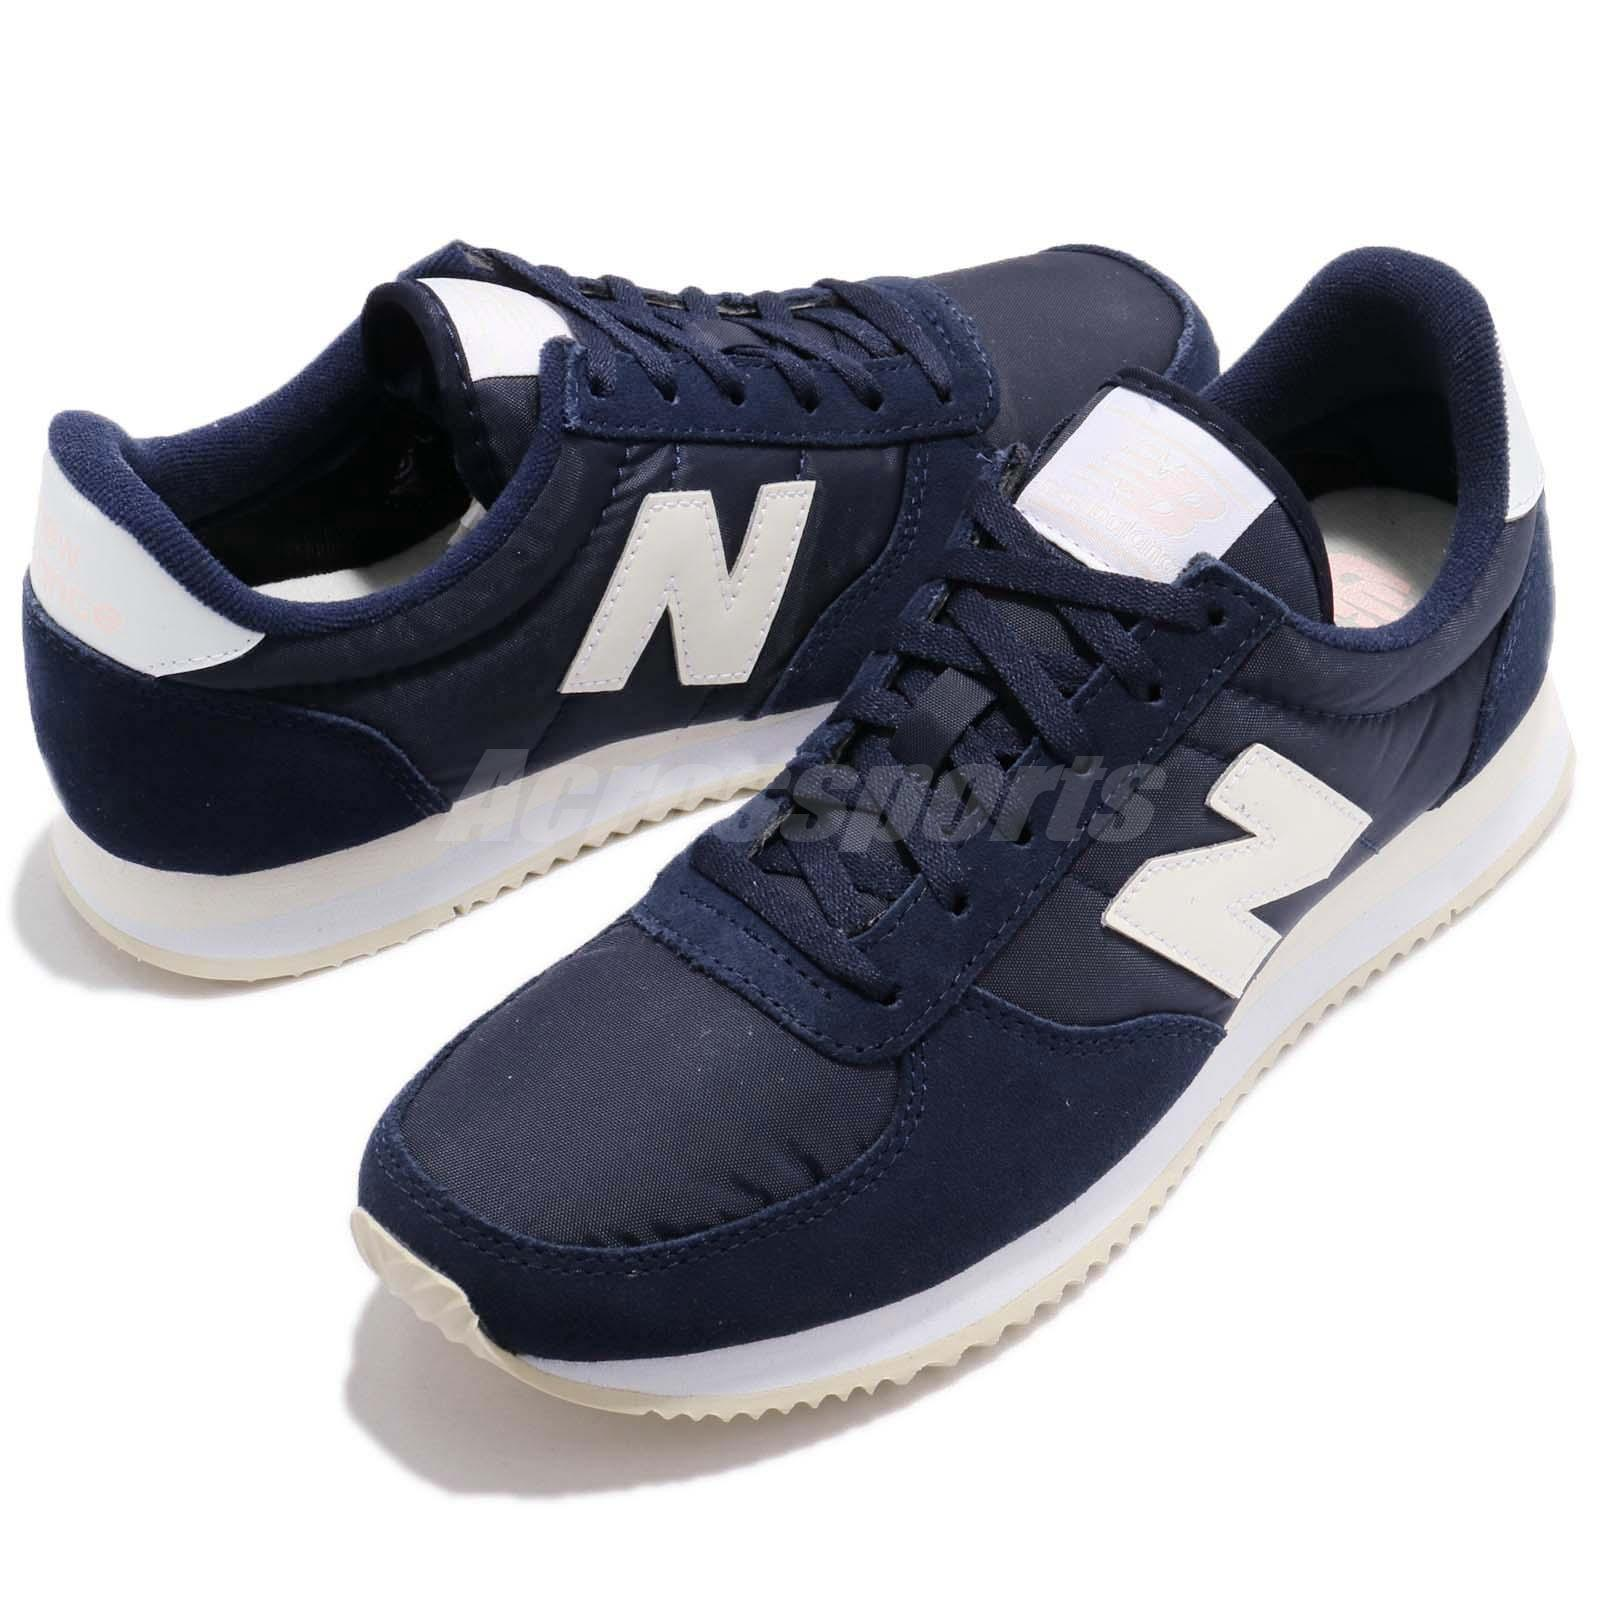 Classic Shoes New Wl220rn Lifestyle Navy Balance B Yellow Running BXBWqZFPn